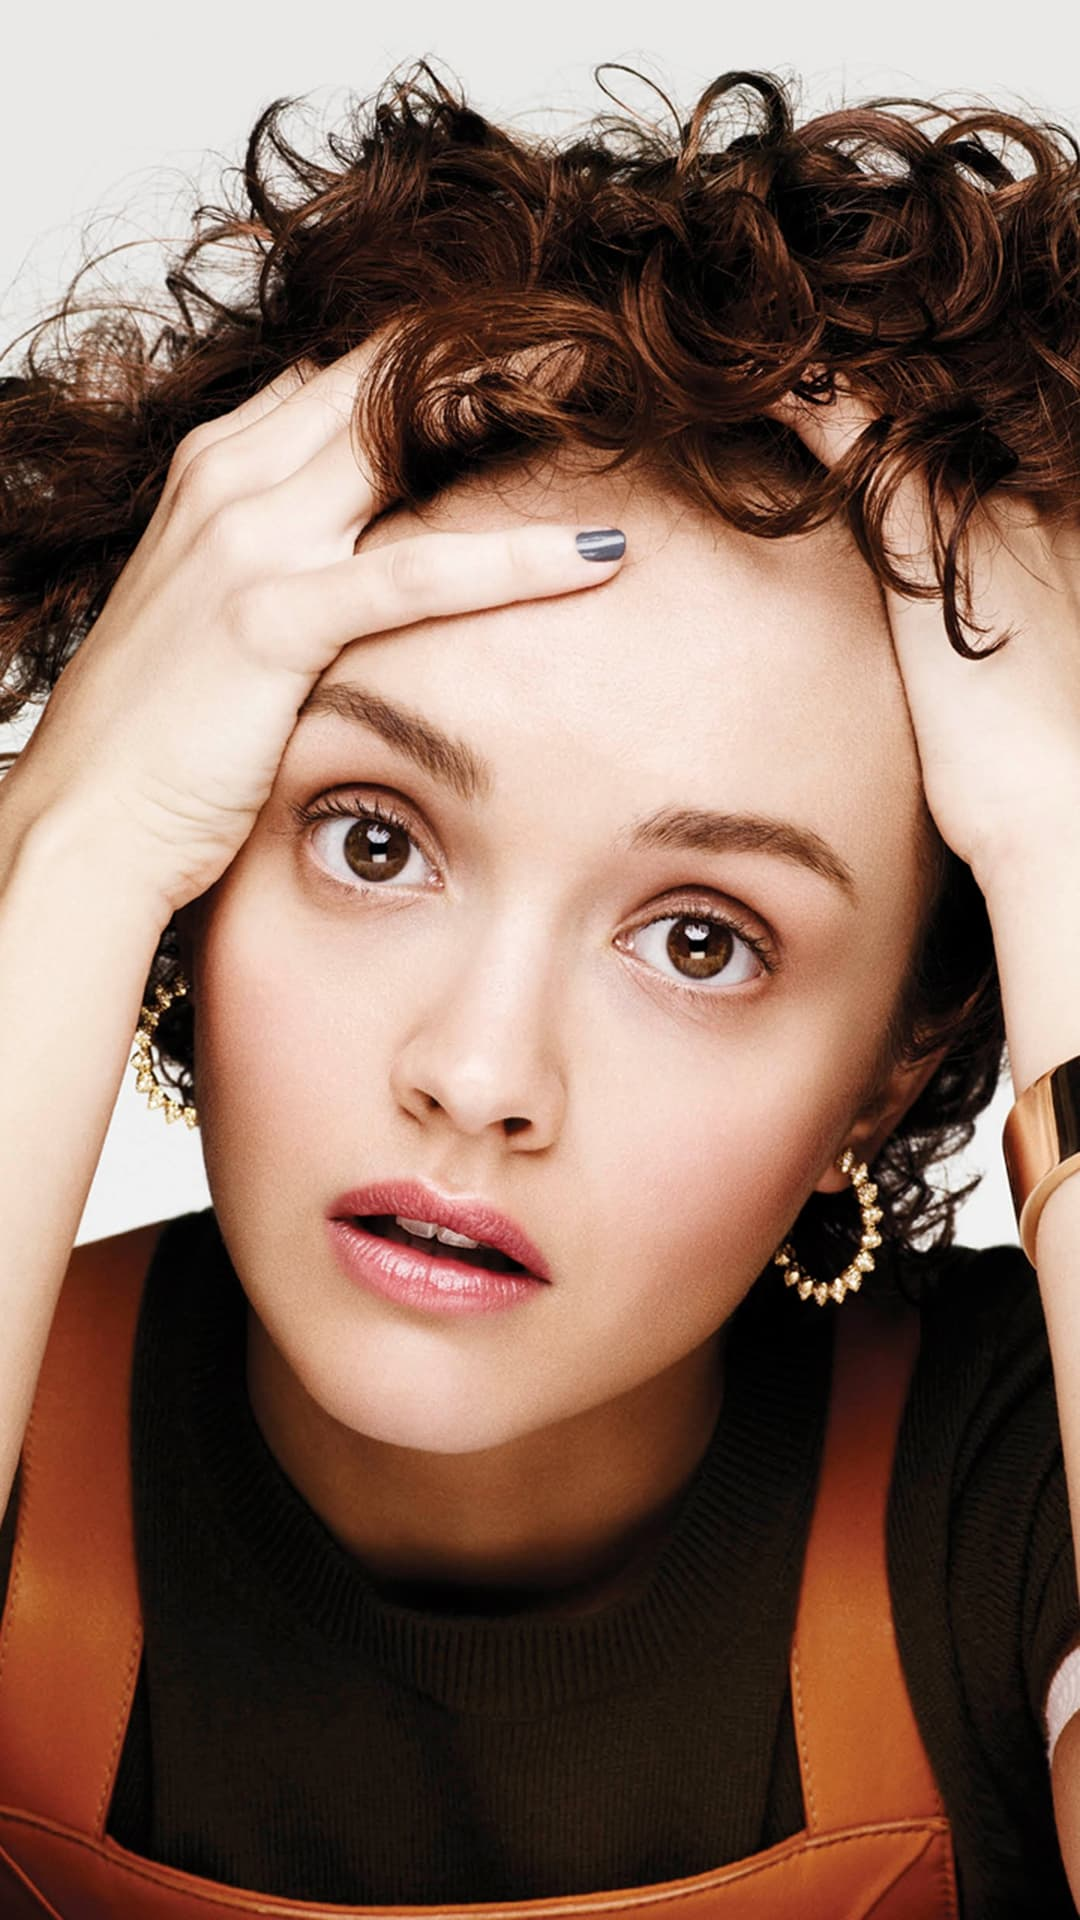 Full HD Android Olivia Cooke pics, photos